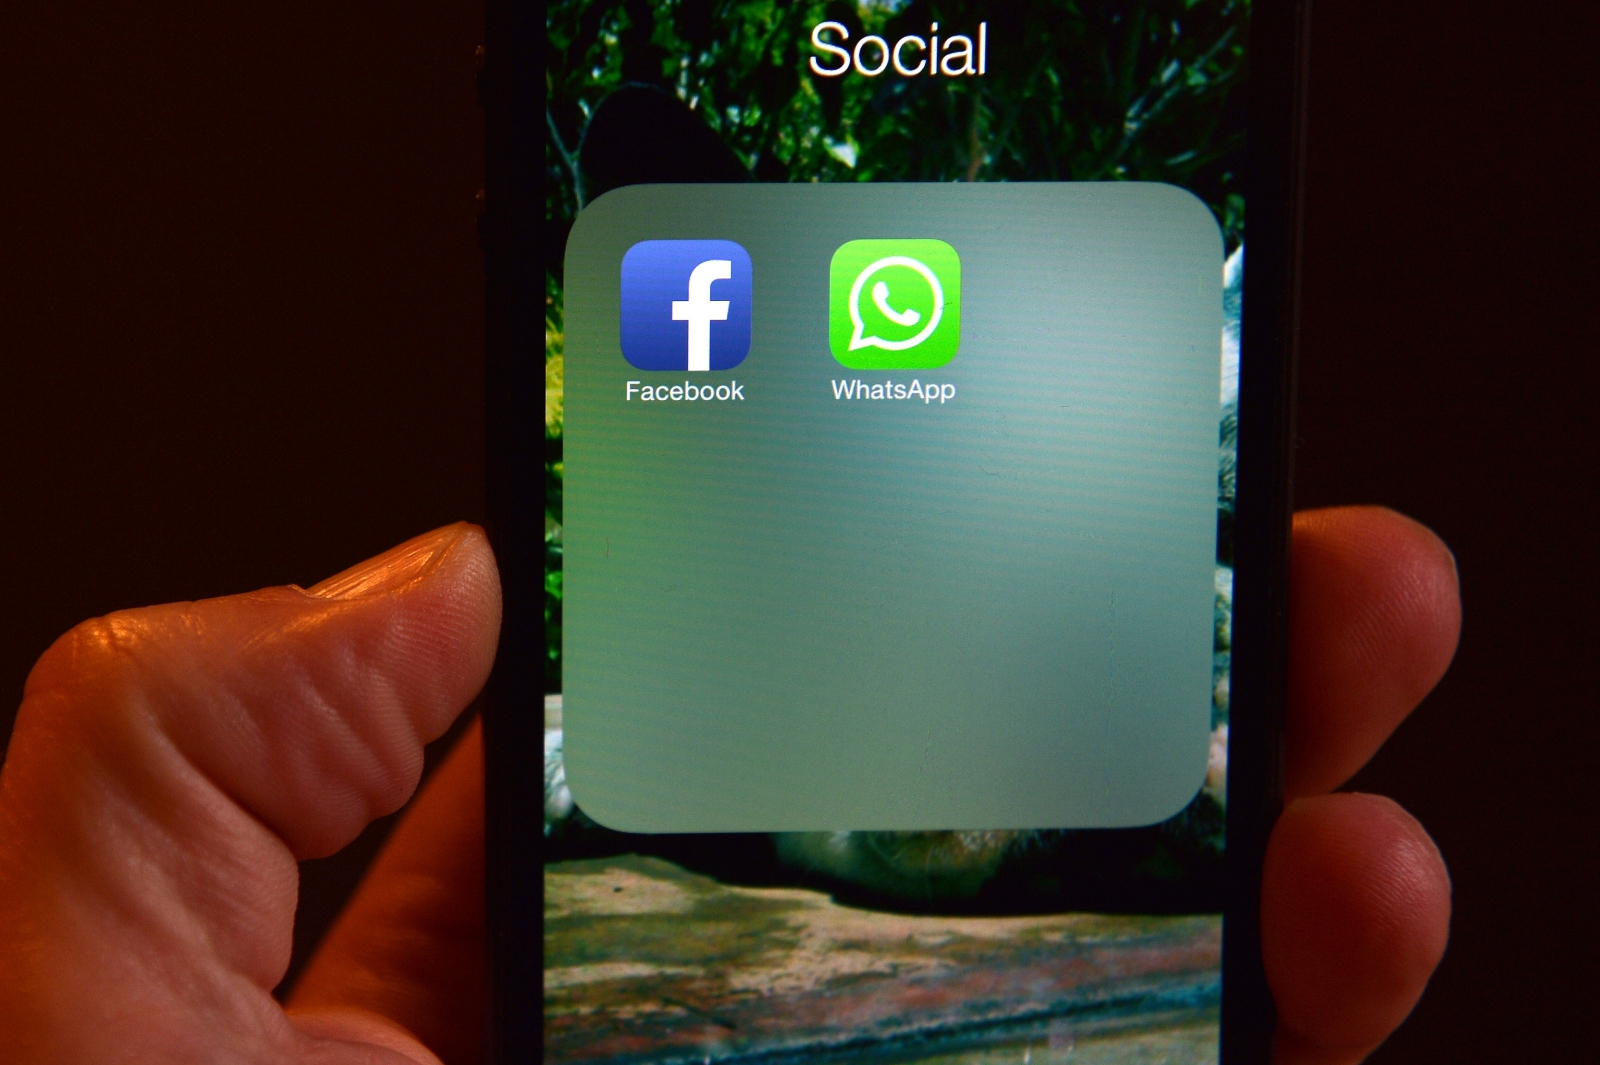 Here's a step-by-step guide on how to keep Facebook from getting your number through WhatsApp